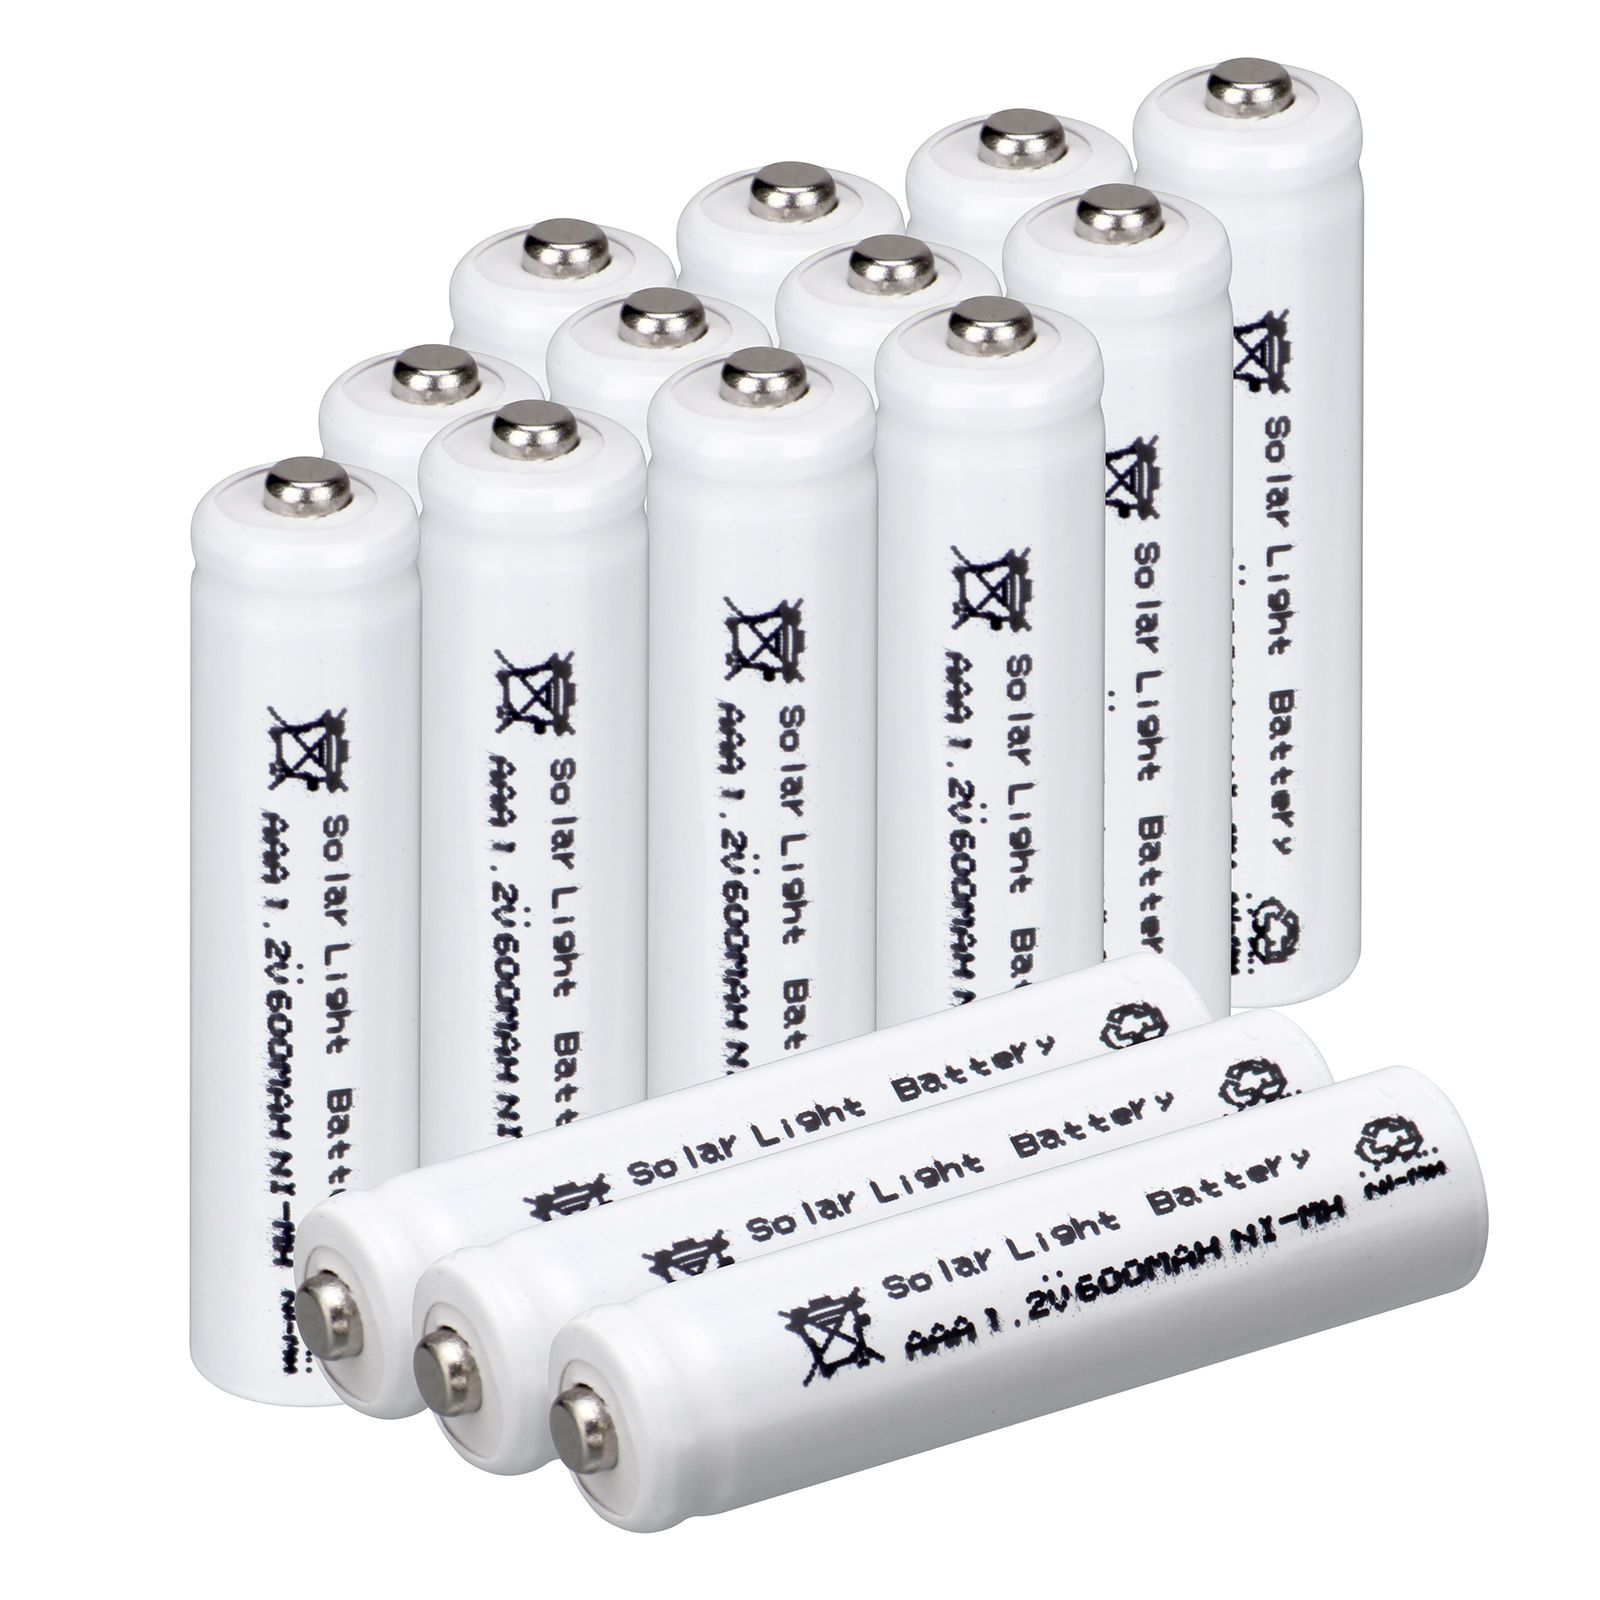 13 84 Aud Pro White 15pc Aaa Size Solar Light 1 2v 600mah Nimh Rechargeable Batteries Ebay El With Images Solar Battery Batteries Diy Rechargeable Batteries